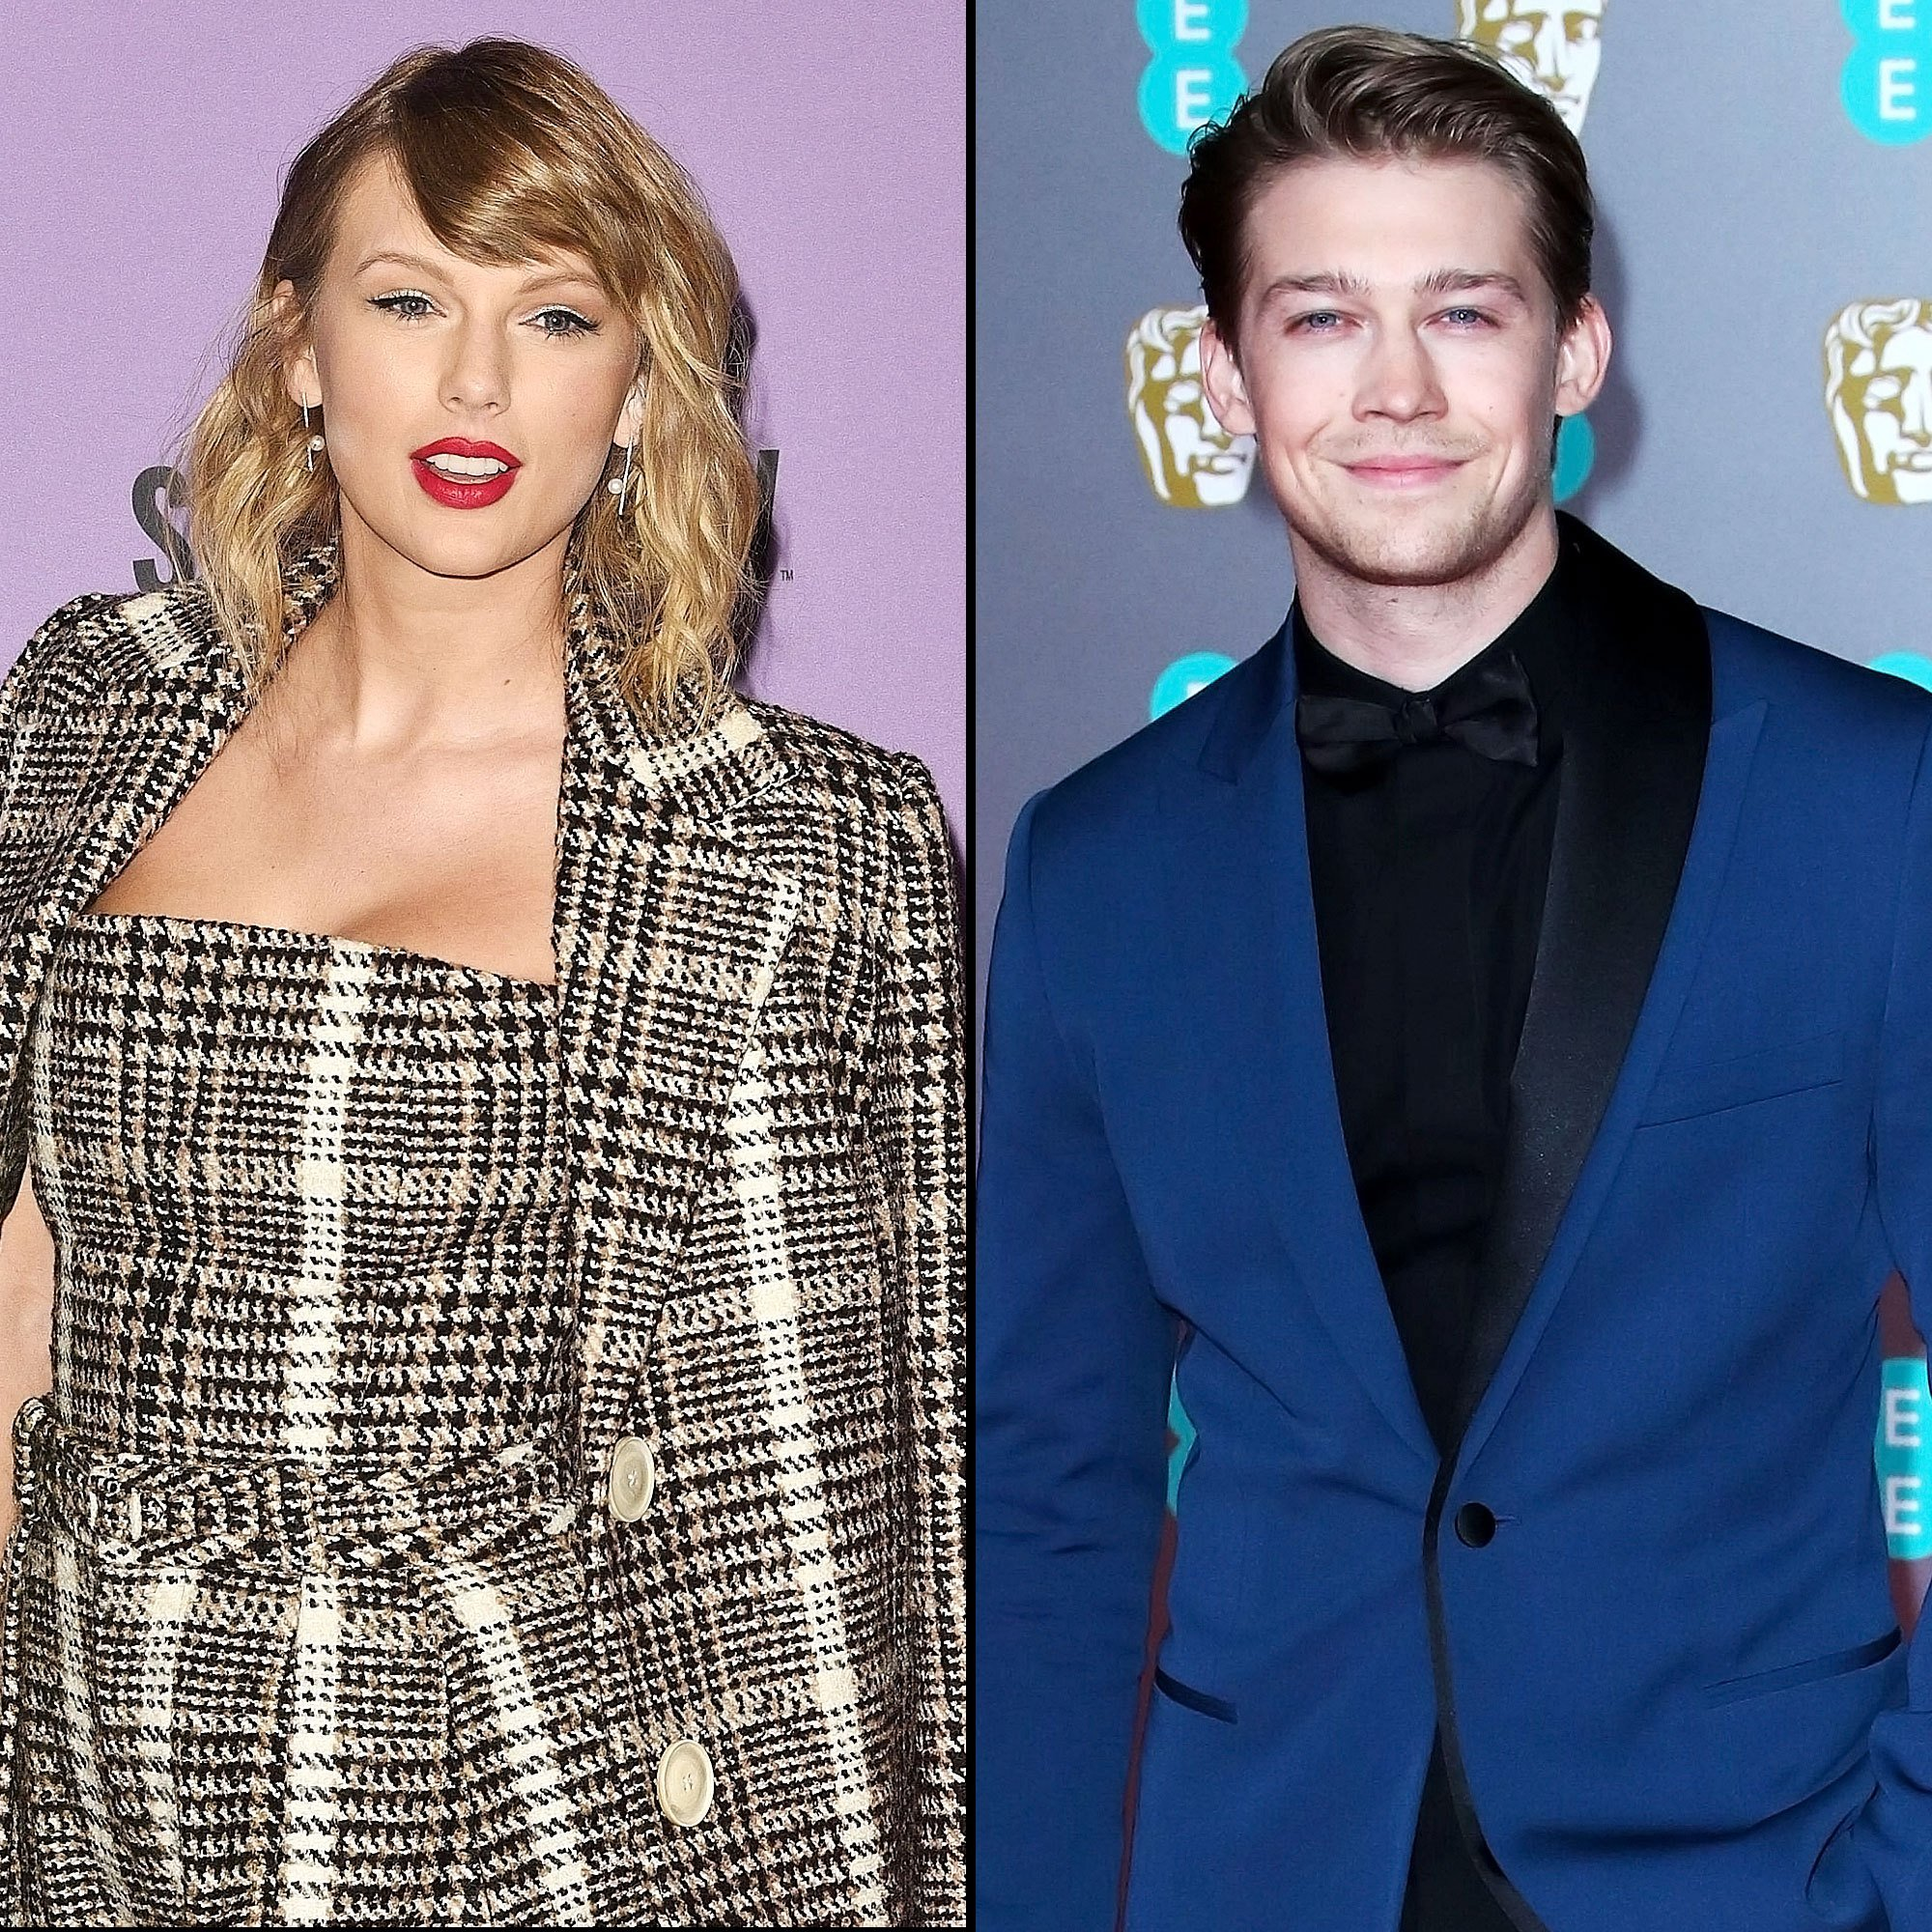 Taylor Swift Reacts To BF Joe Alwyn's Announcement About Exciting 'Conversations With Friends' Role!